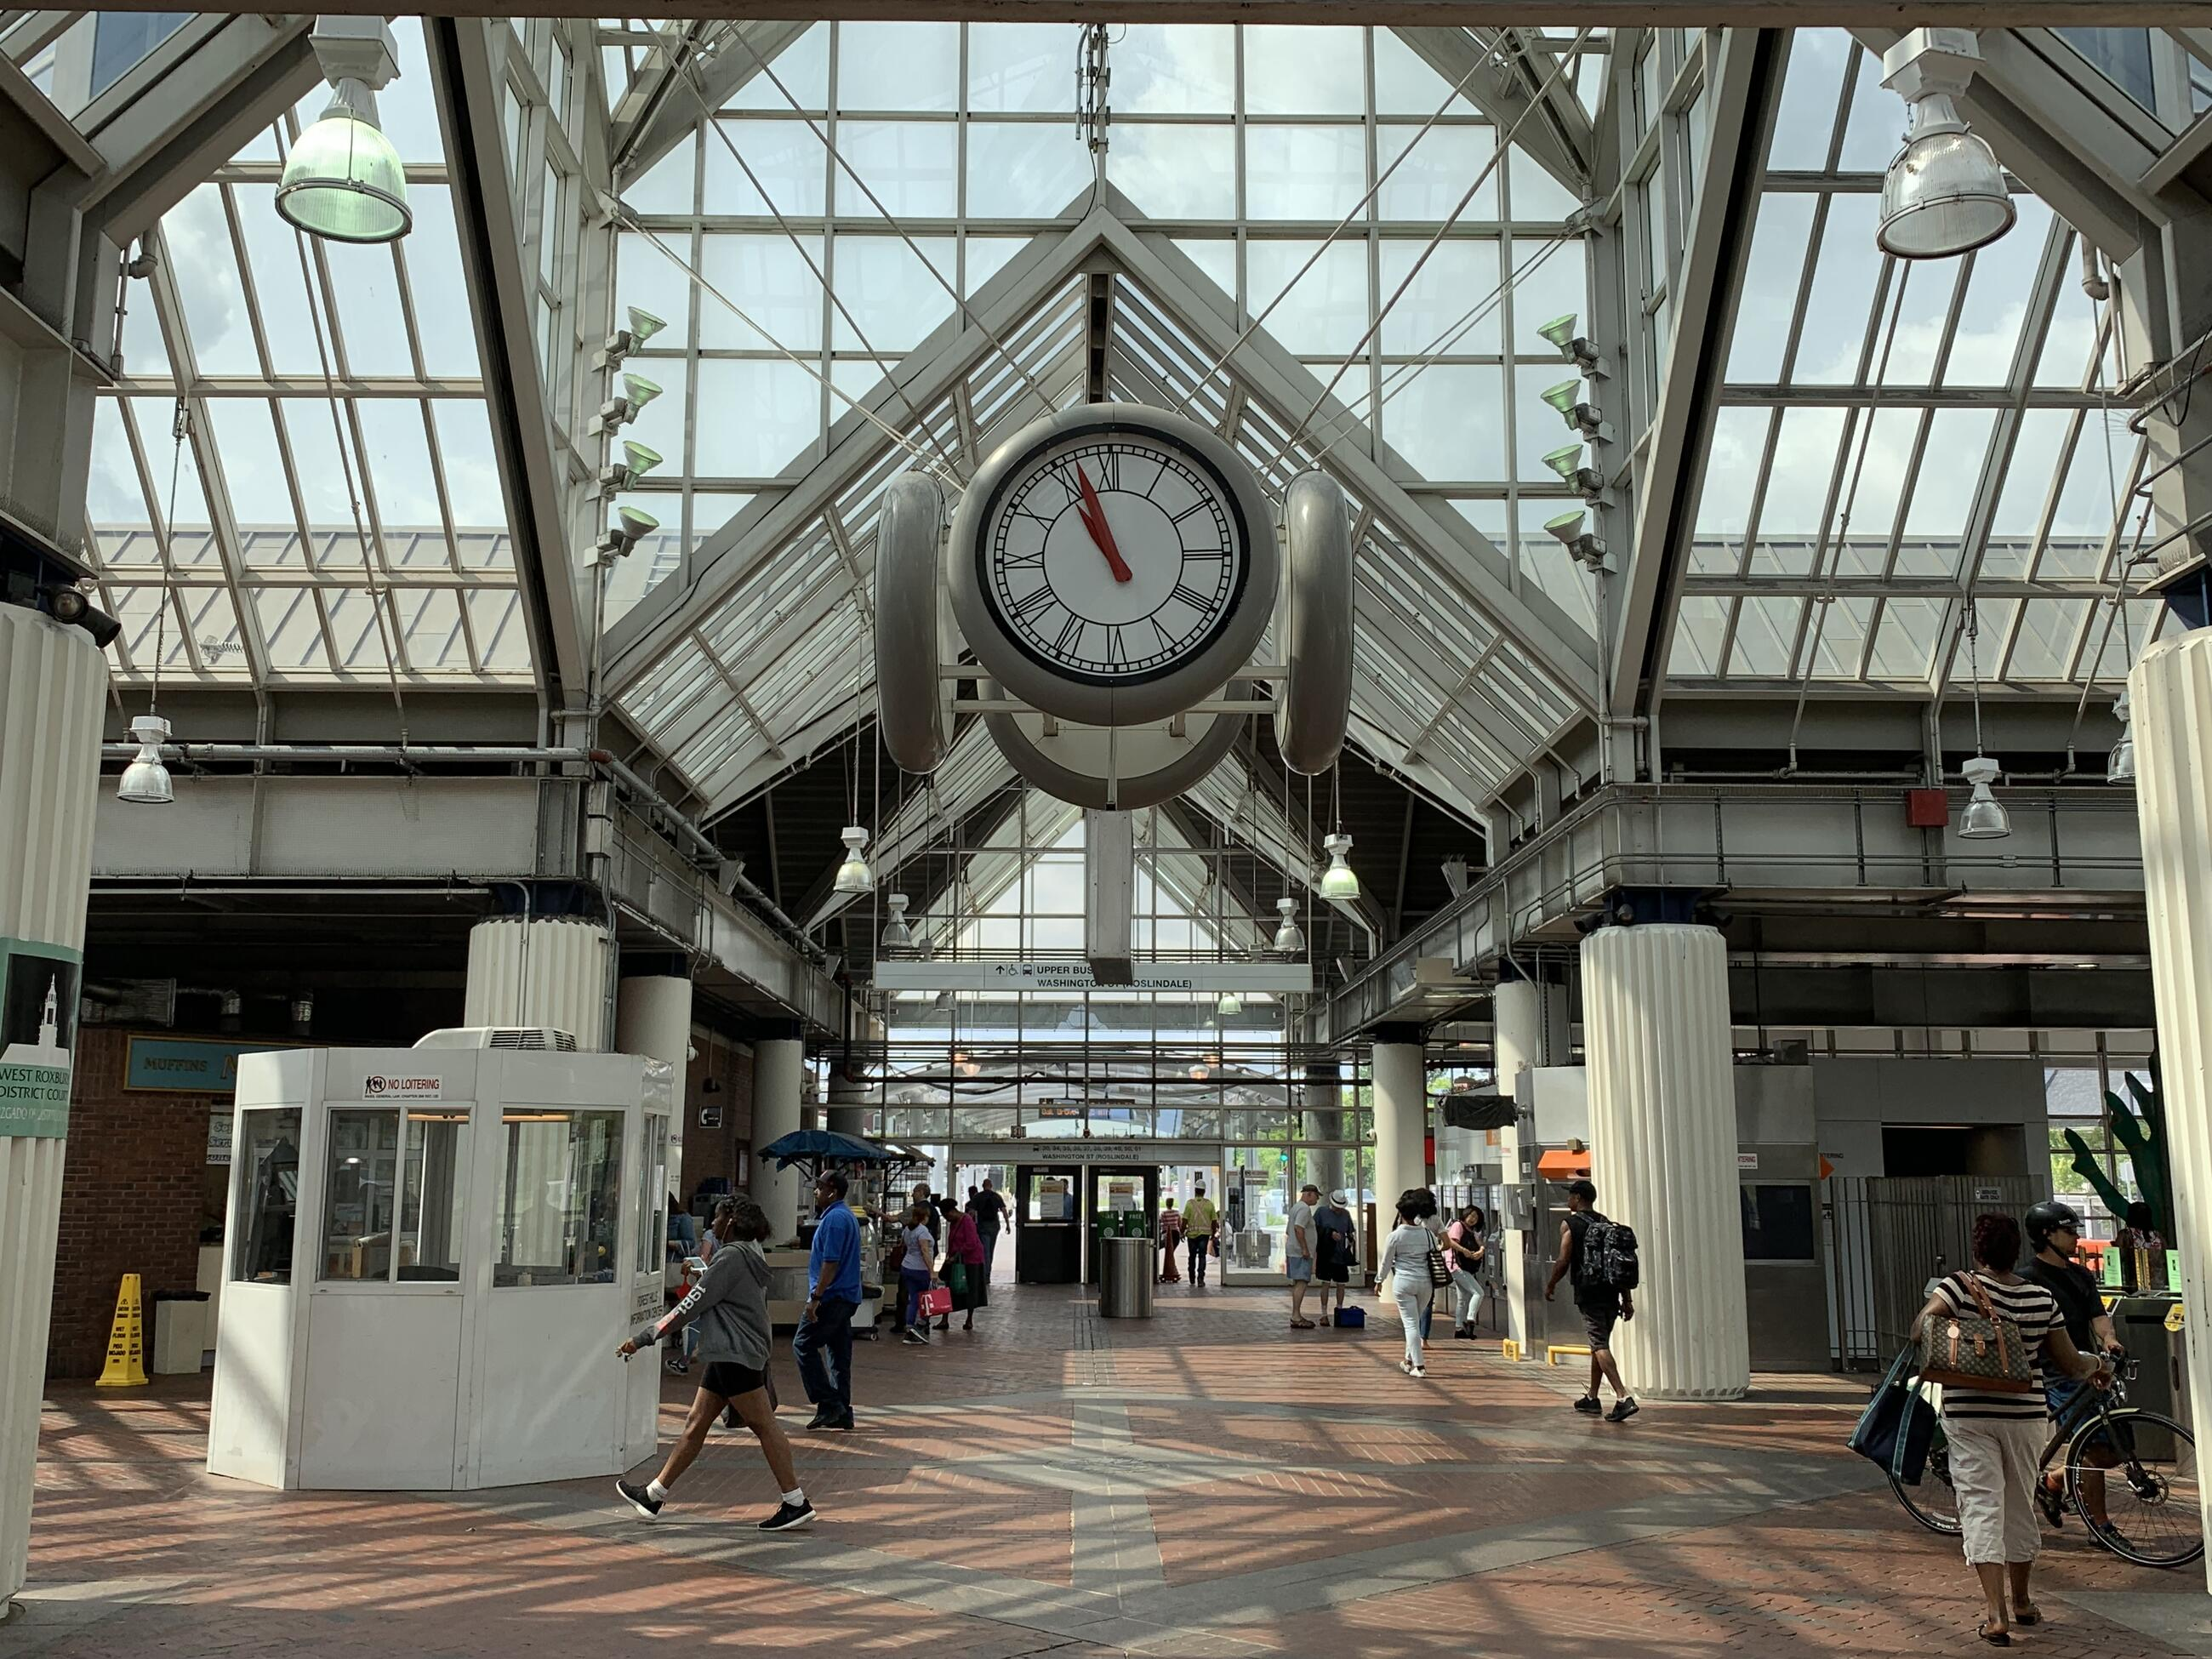 A photo of the interior of Forest Hills station, showing the clock and facing towards the upper busway. Many people are walking through the station.